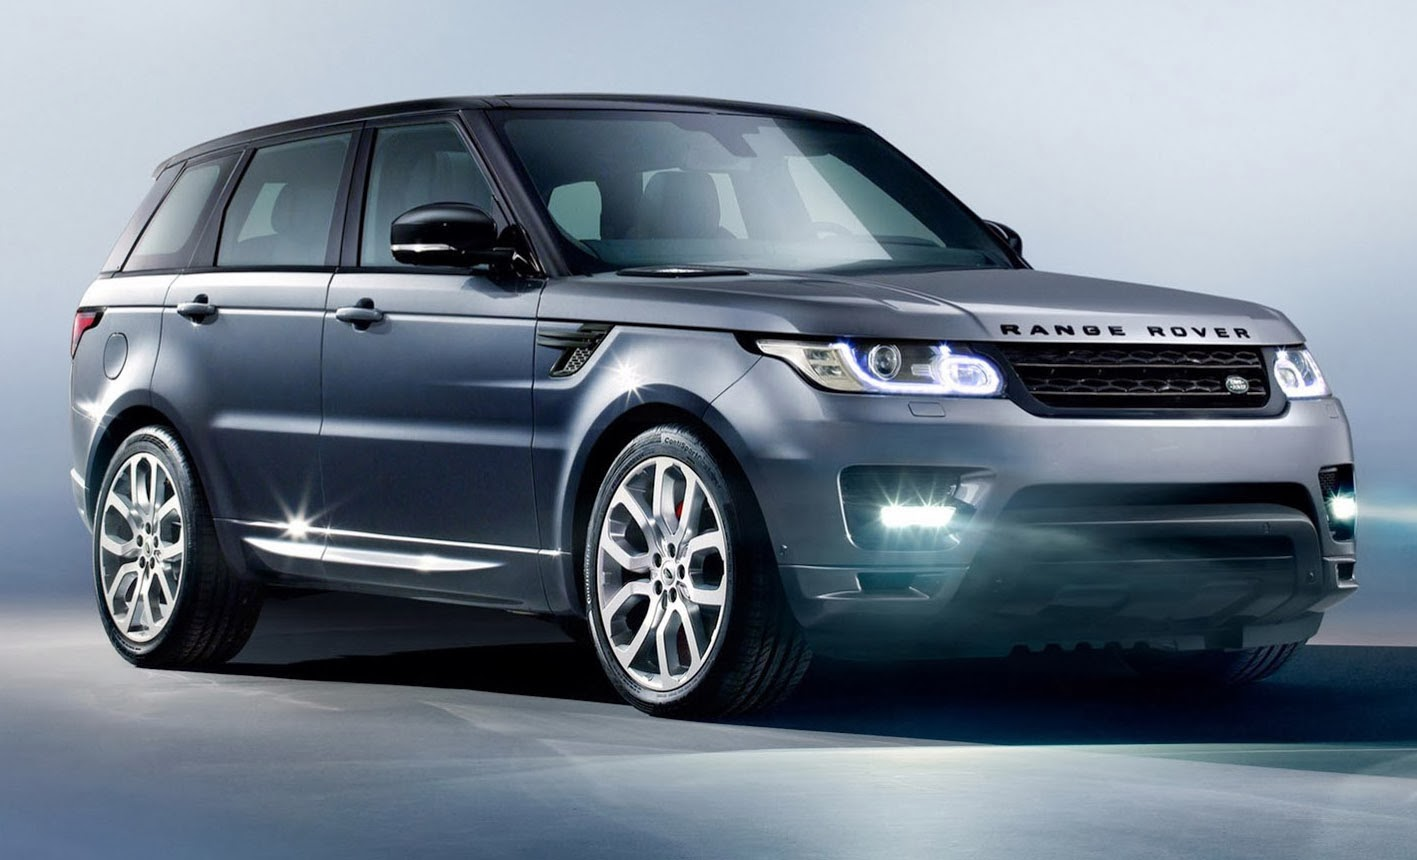 Range rover sport owners manual